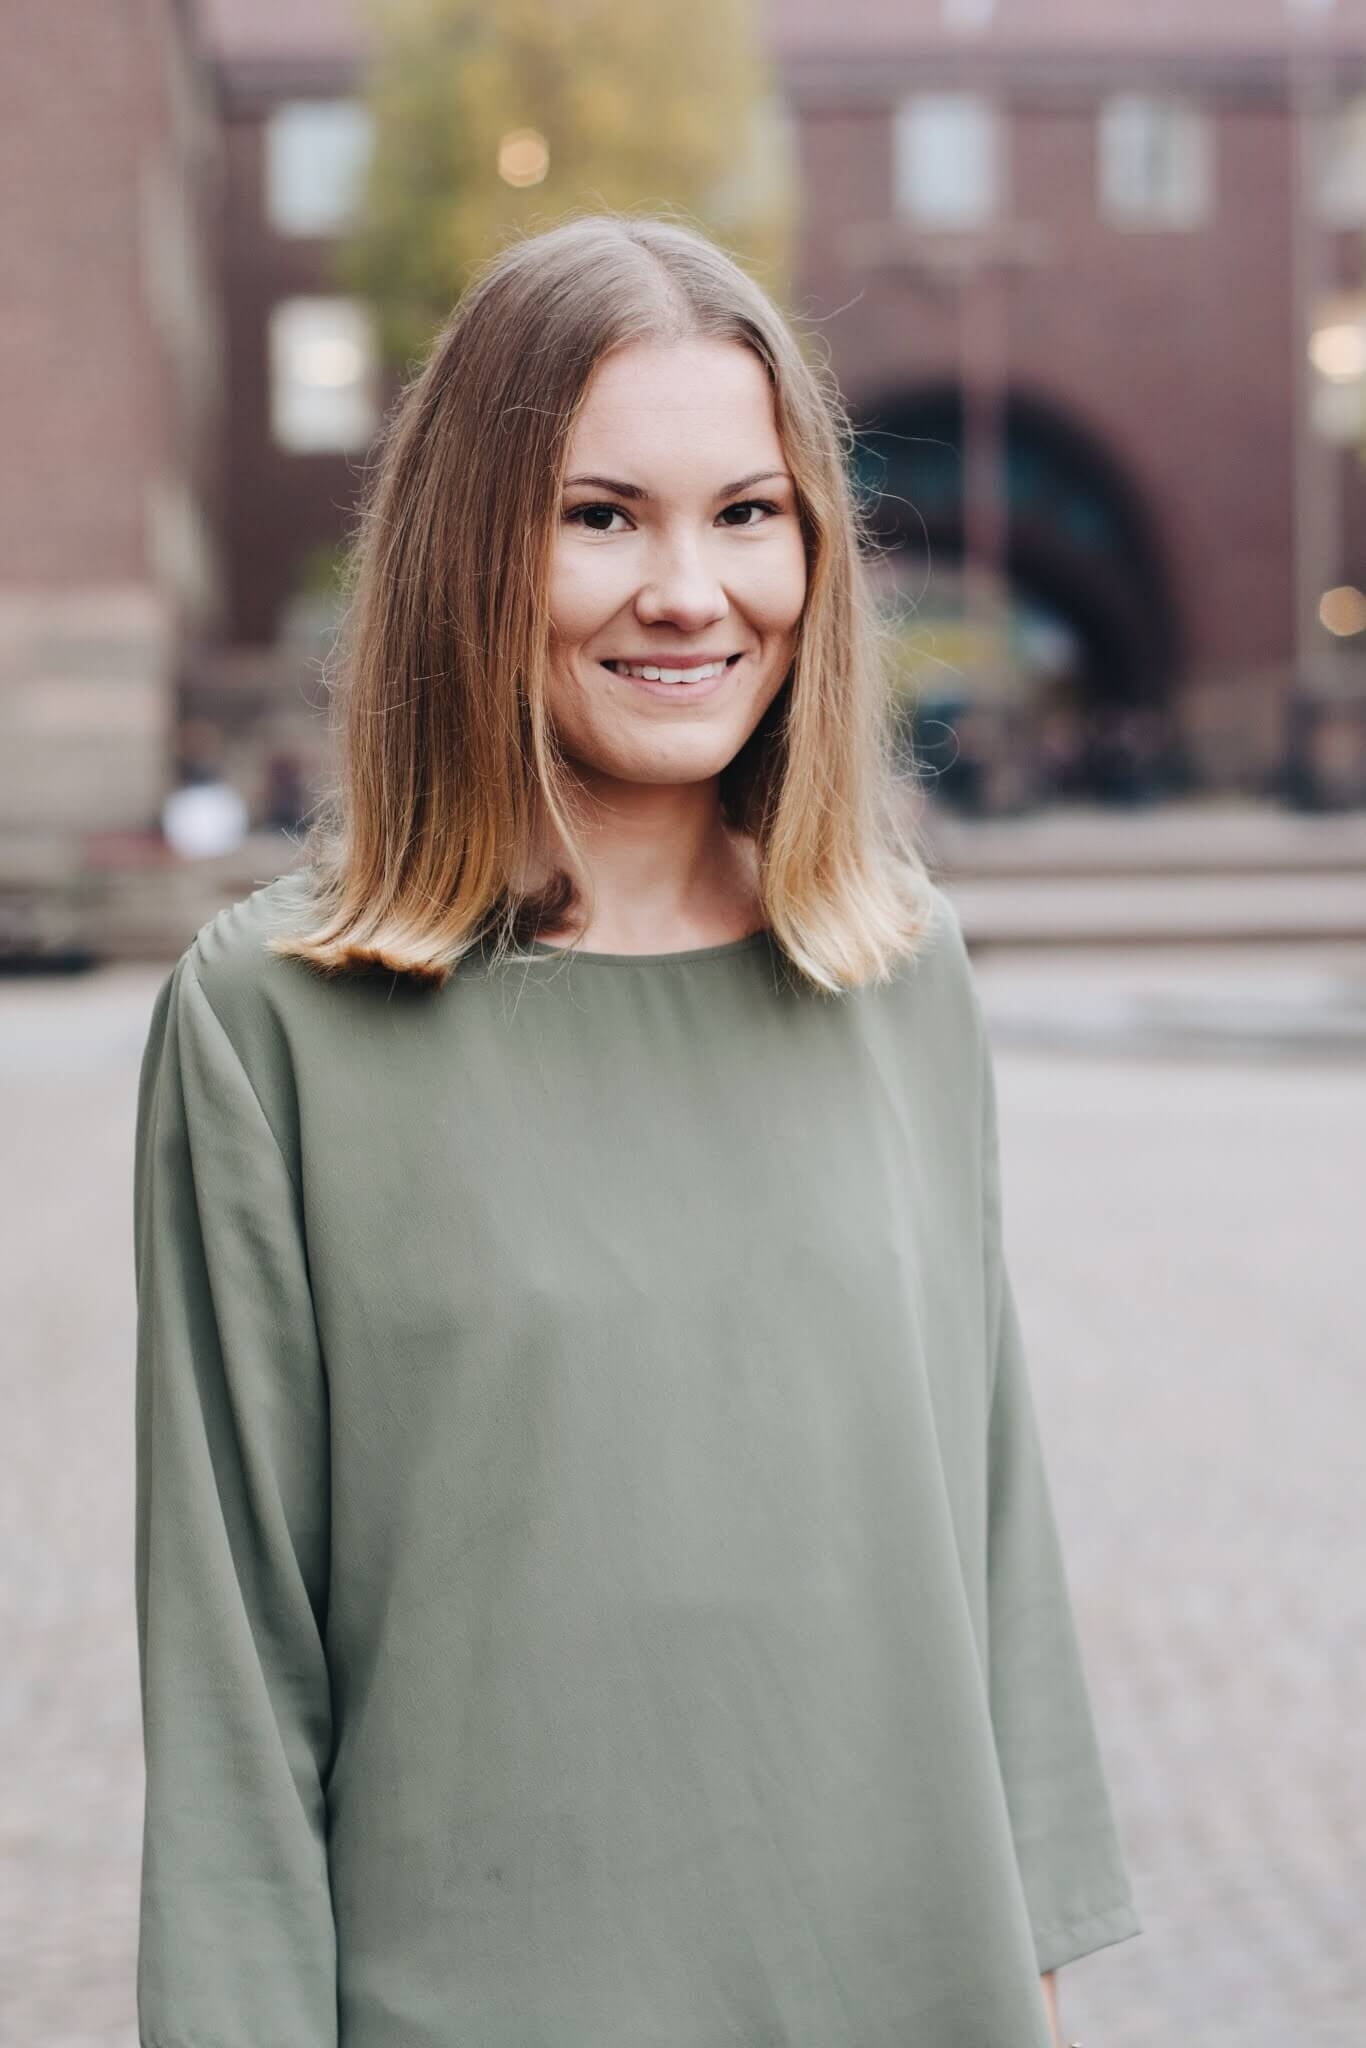 Pia Appelquist, Event Manager